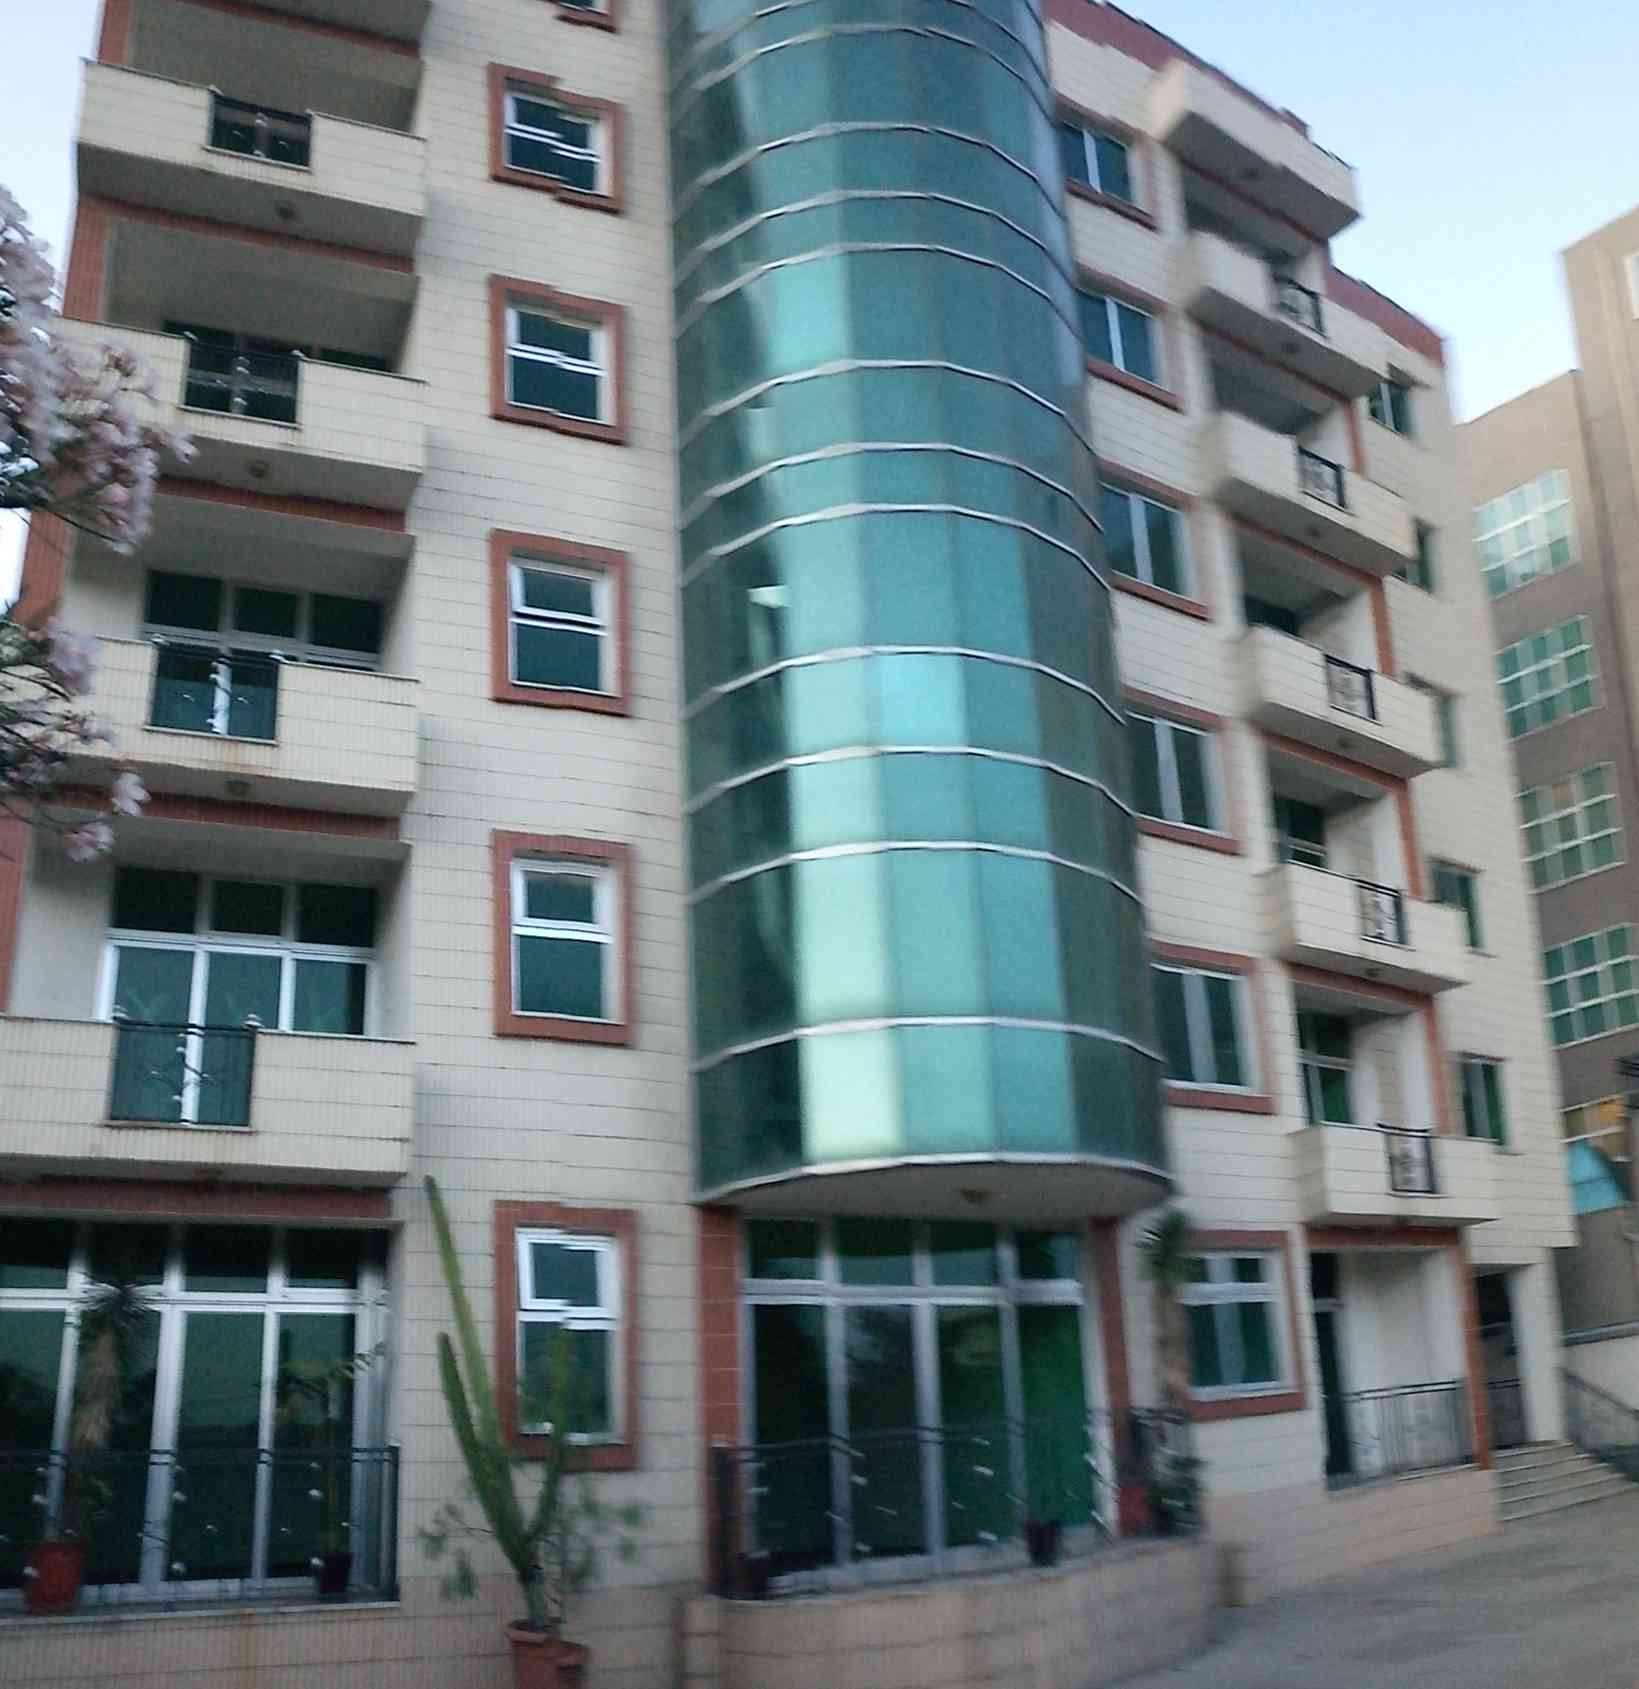 30 Bedroom Building For Rent in Addis Ababa a Guard Shola